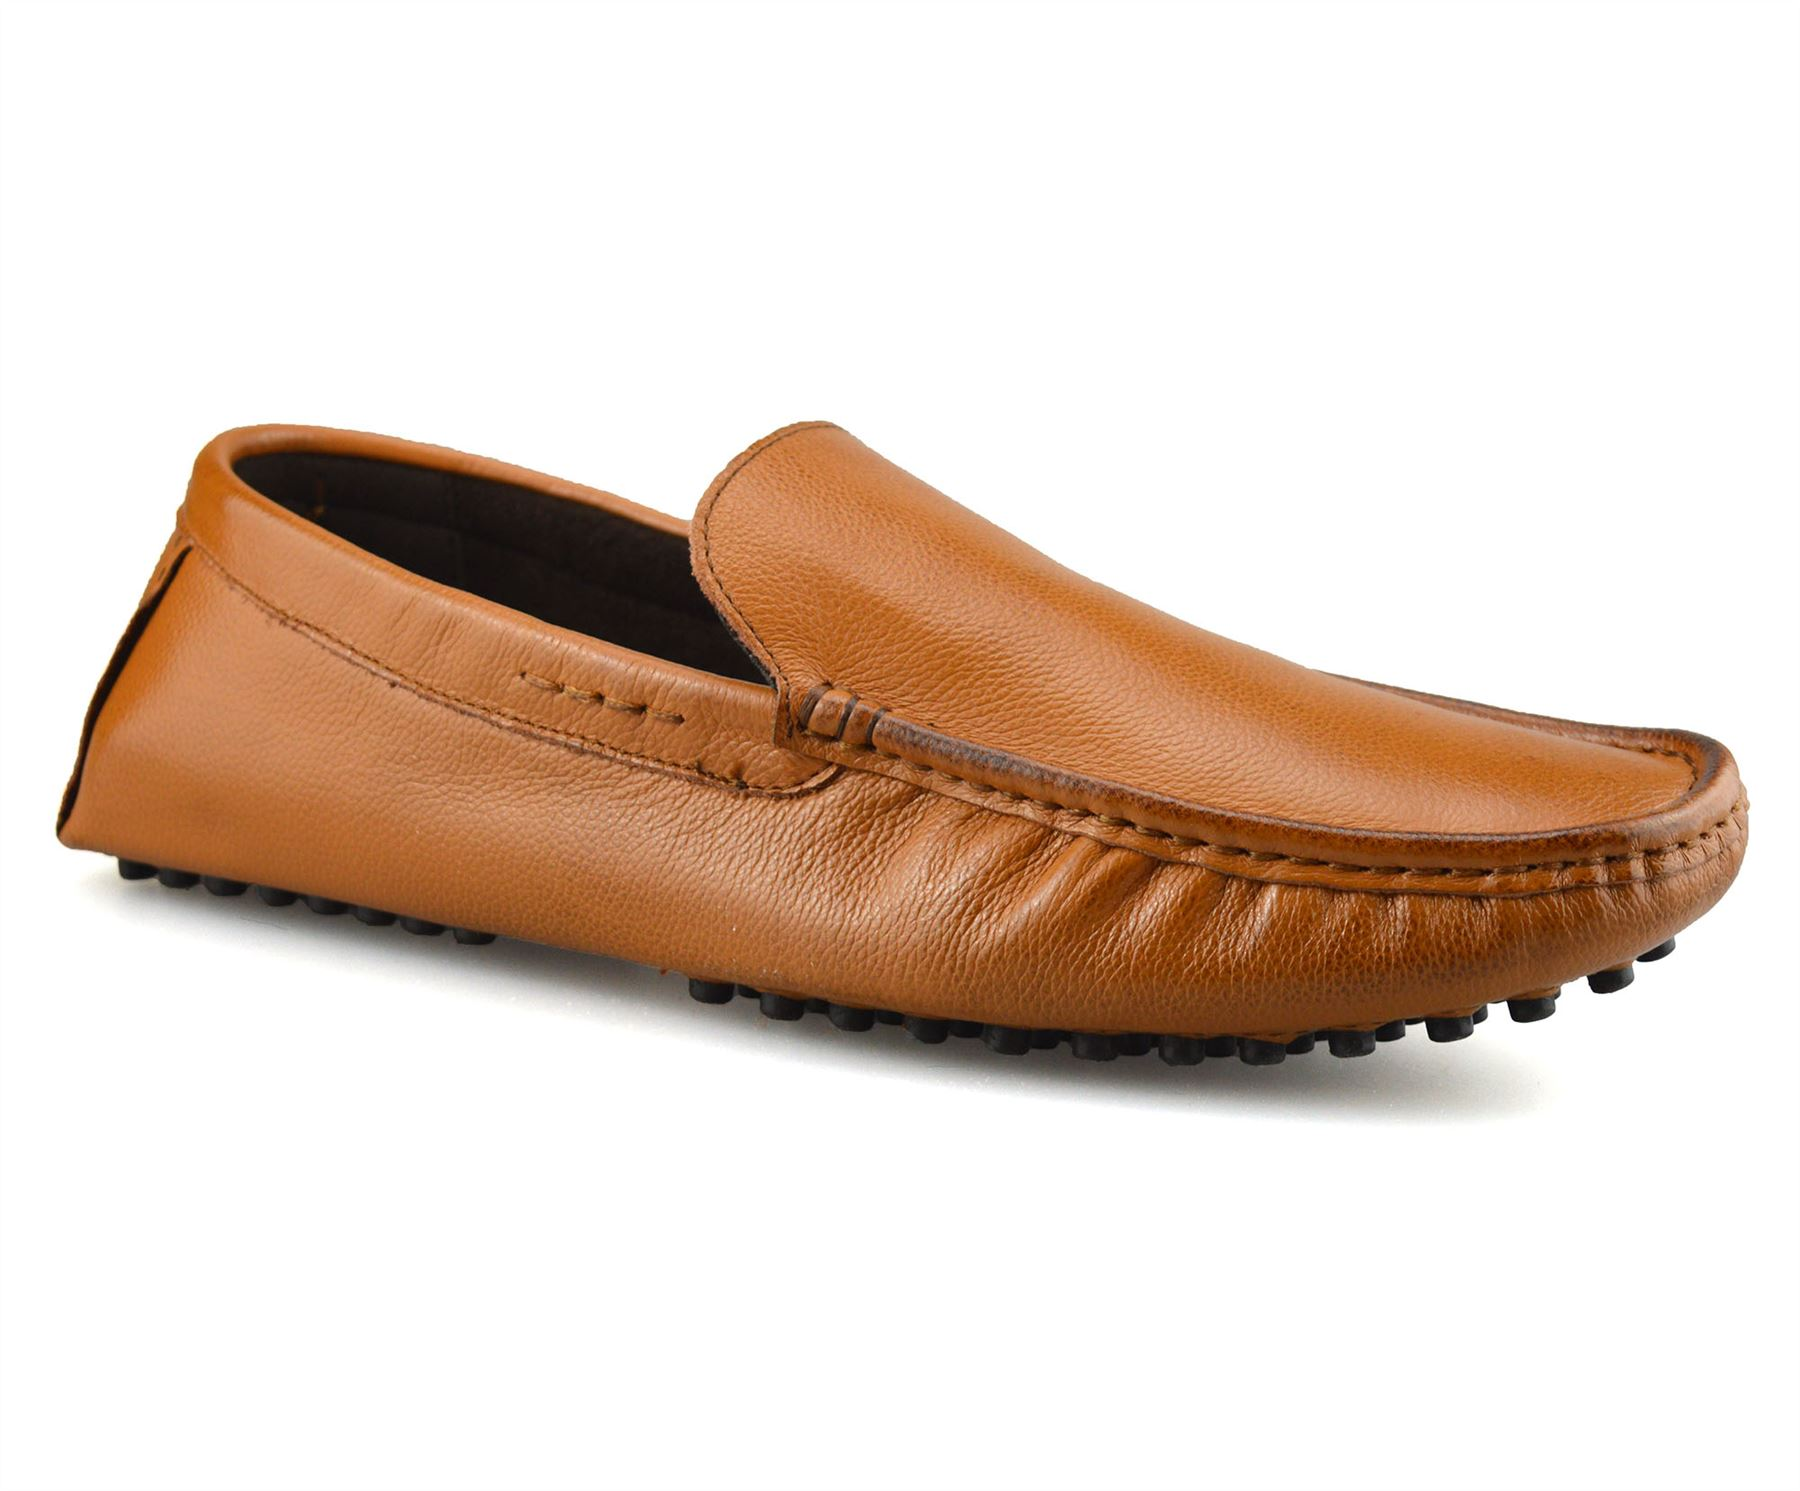 Mens-Leather-Slip-On-Casual-Smart-Loafers-Mocassin-Designer-Driving-Shoes-Size thumbnail 10